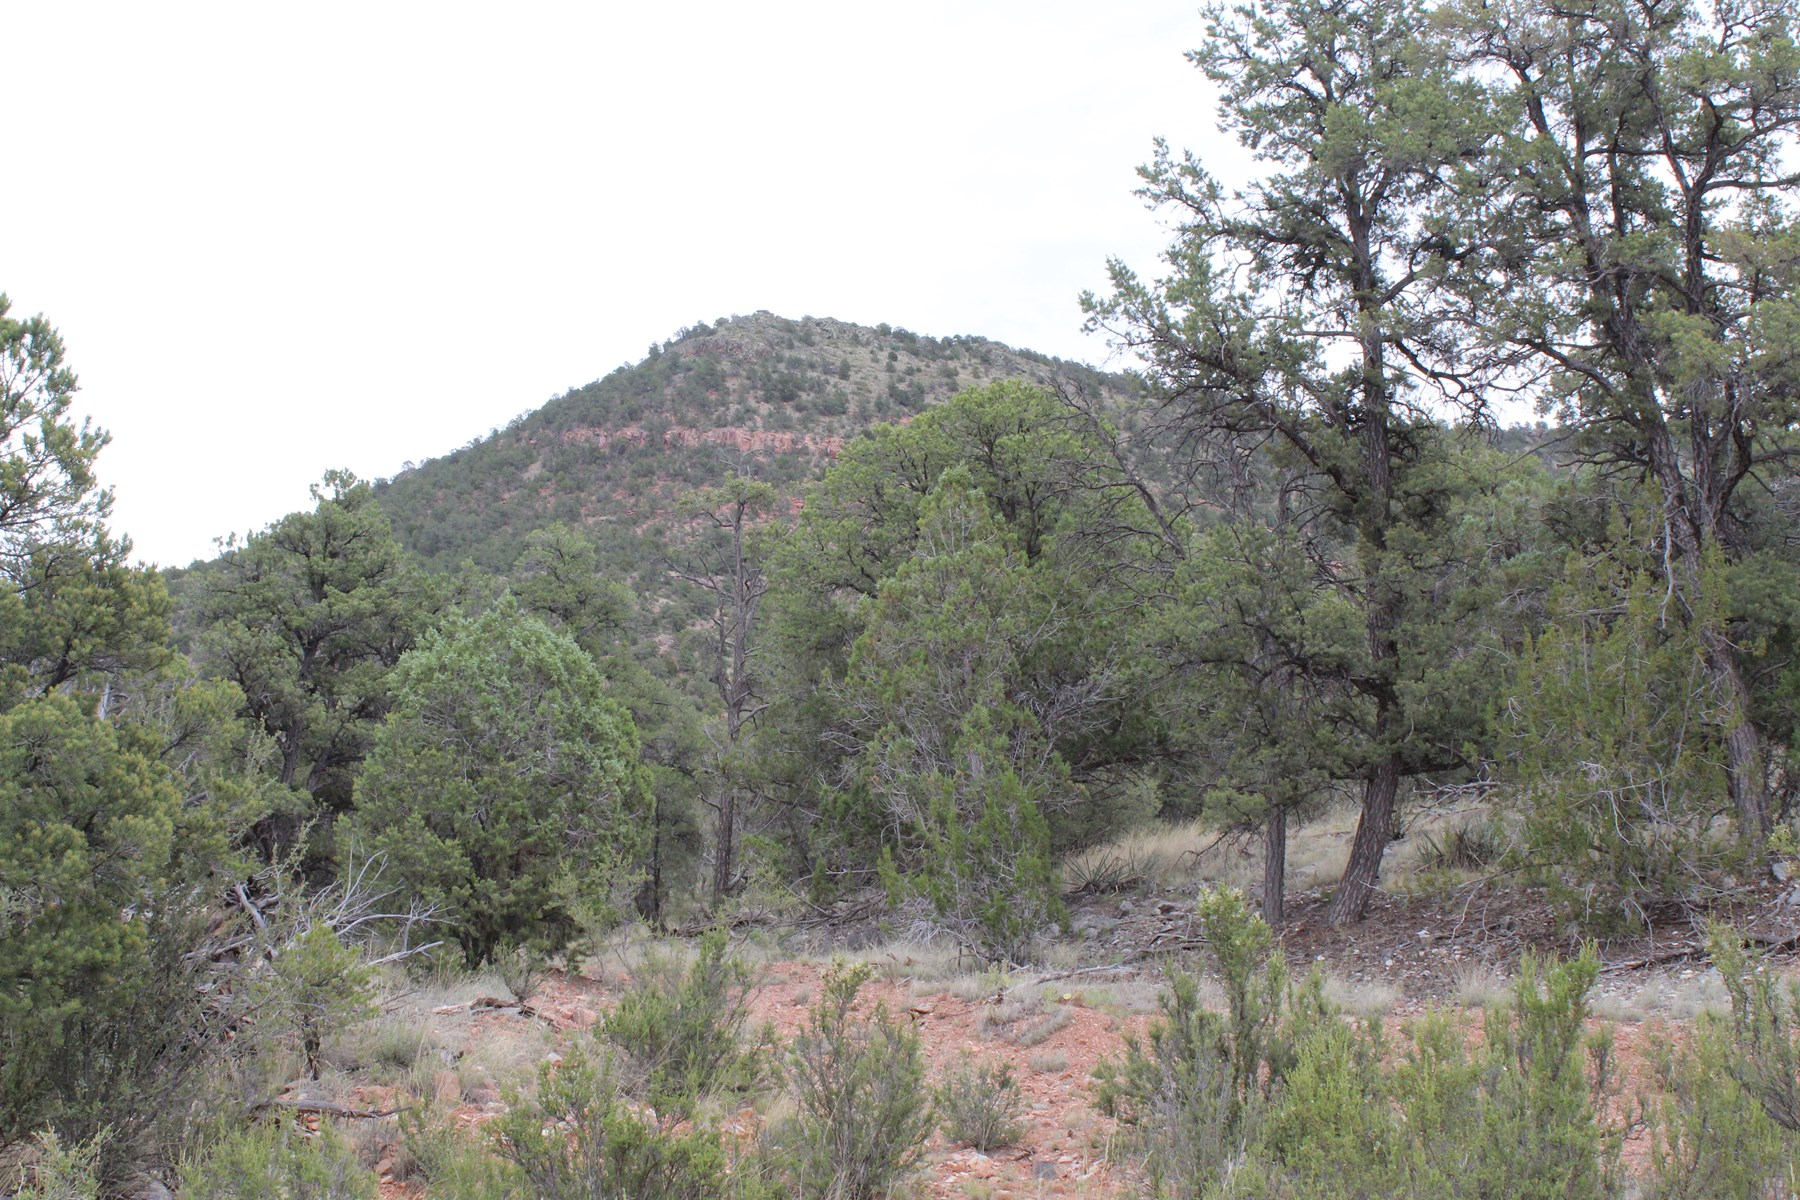 Private and Rural Mountain Land in Arizona Great Price!